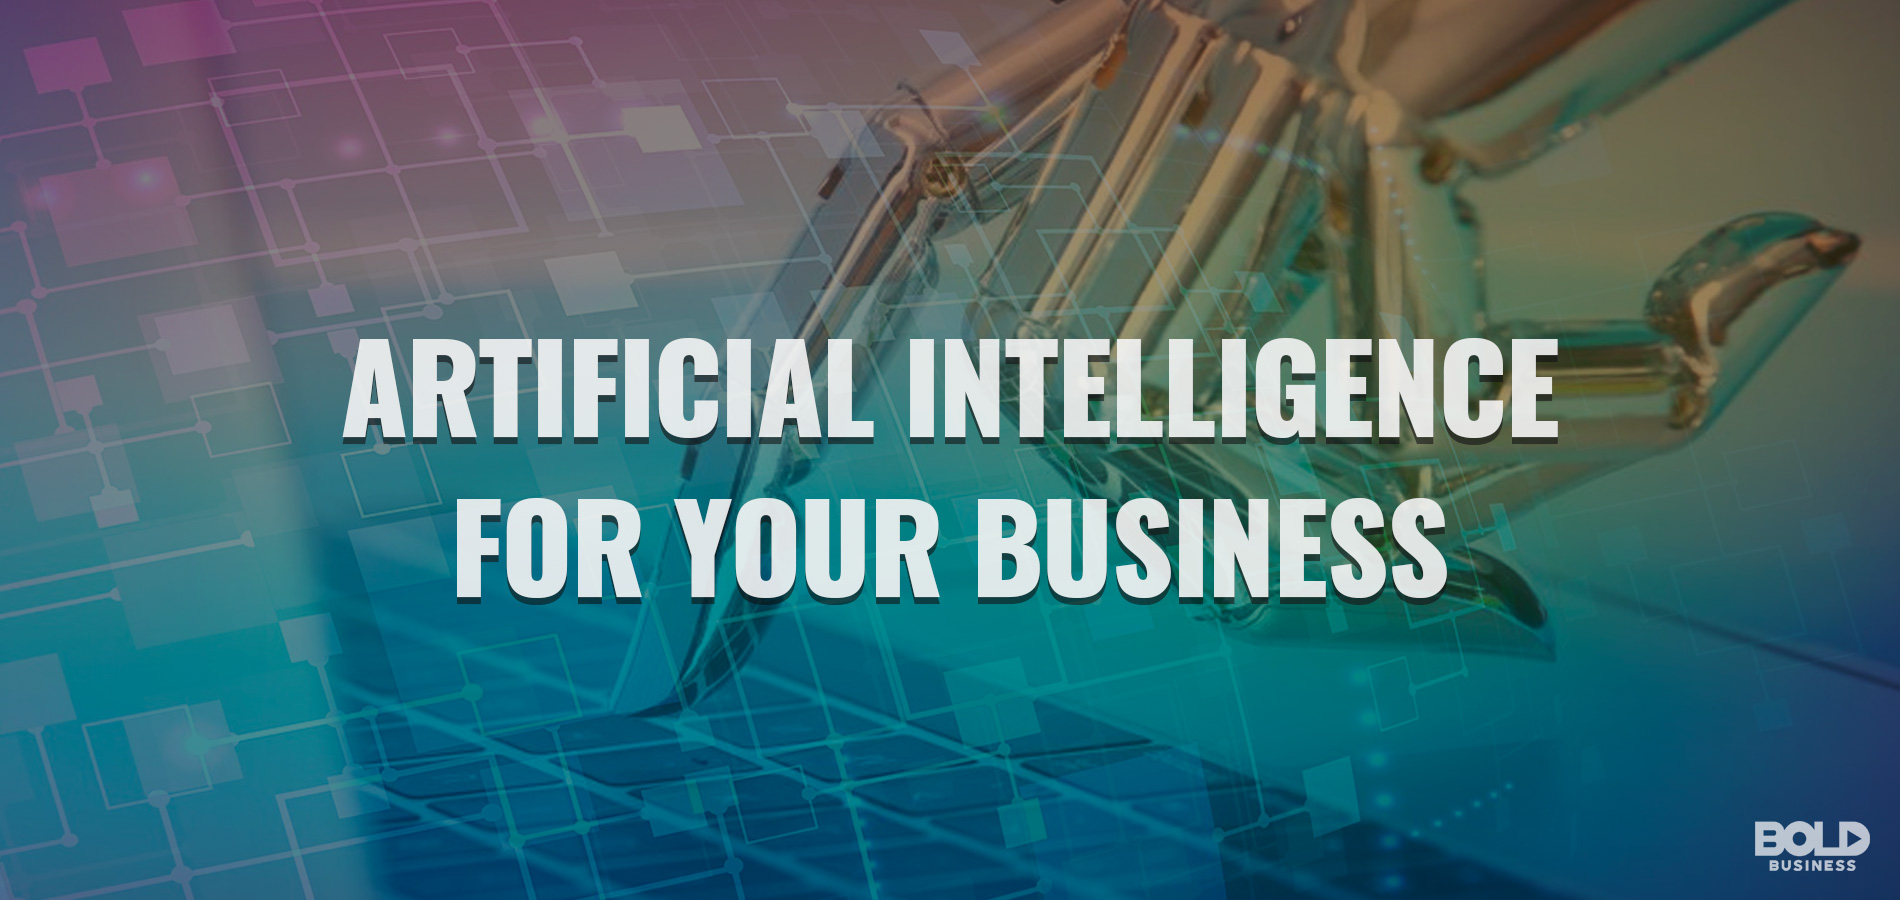 artificial intelligence for your business text over AI graphic